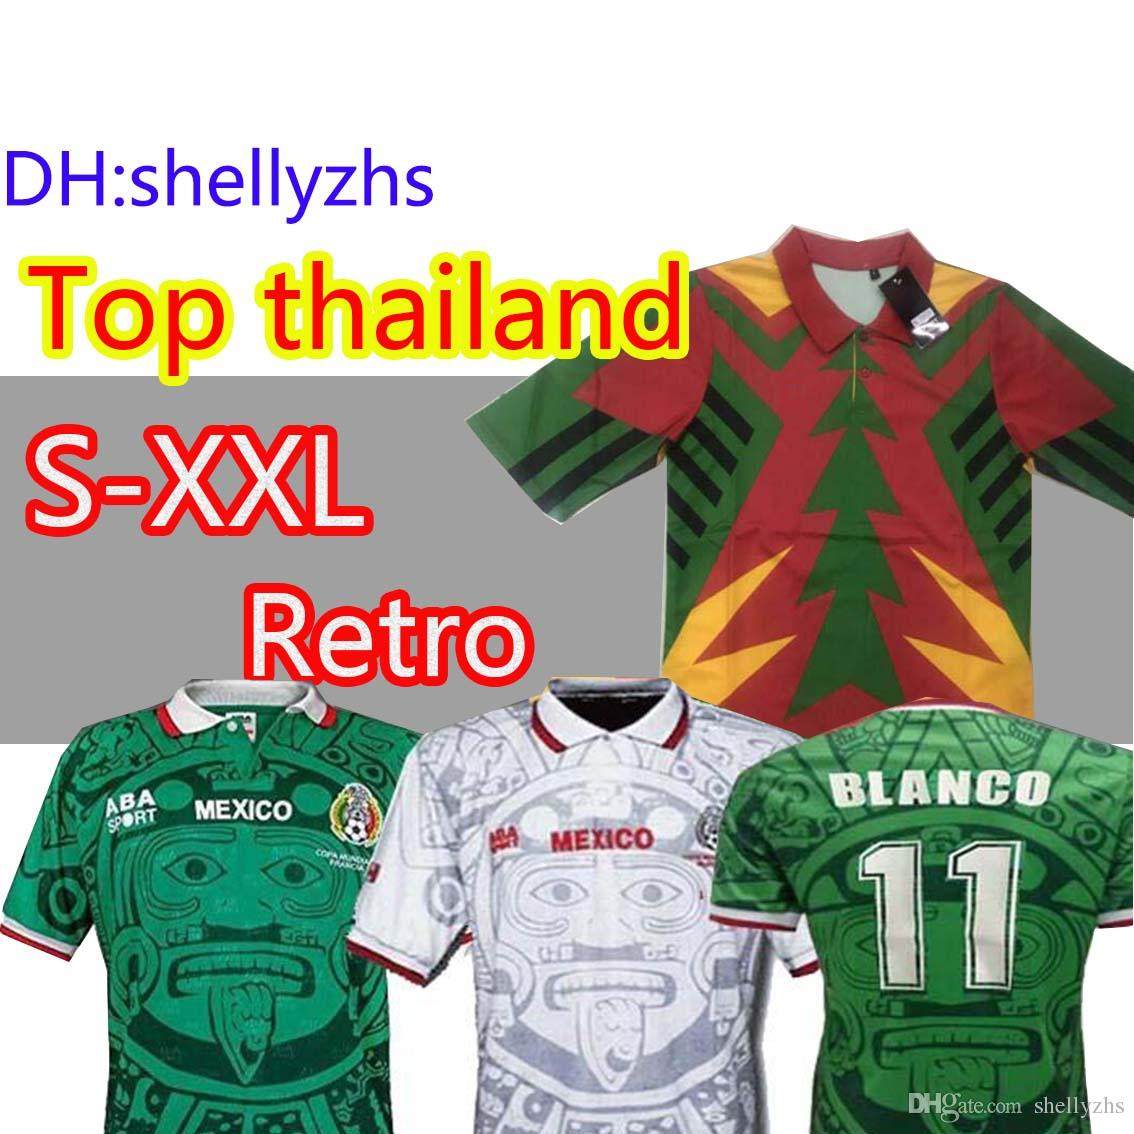 b5d7a2bd3b2 2019 1998 MEXICO RETRO BLANCO Hernandez Blanco Campos Soccer Jerseys  Uniforms HOME Goalkeeper 1994 Football Jerseys Shirt Camiseta Futbol S XXL  From ...